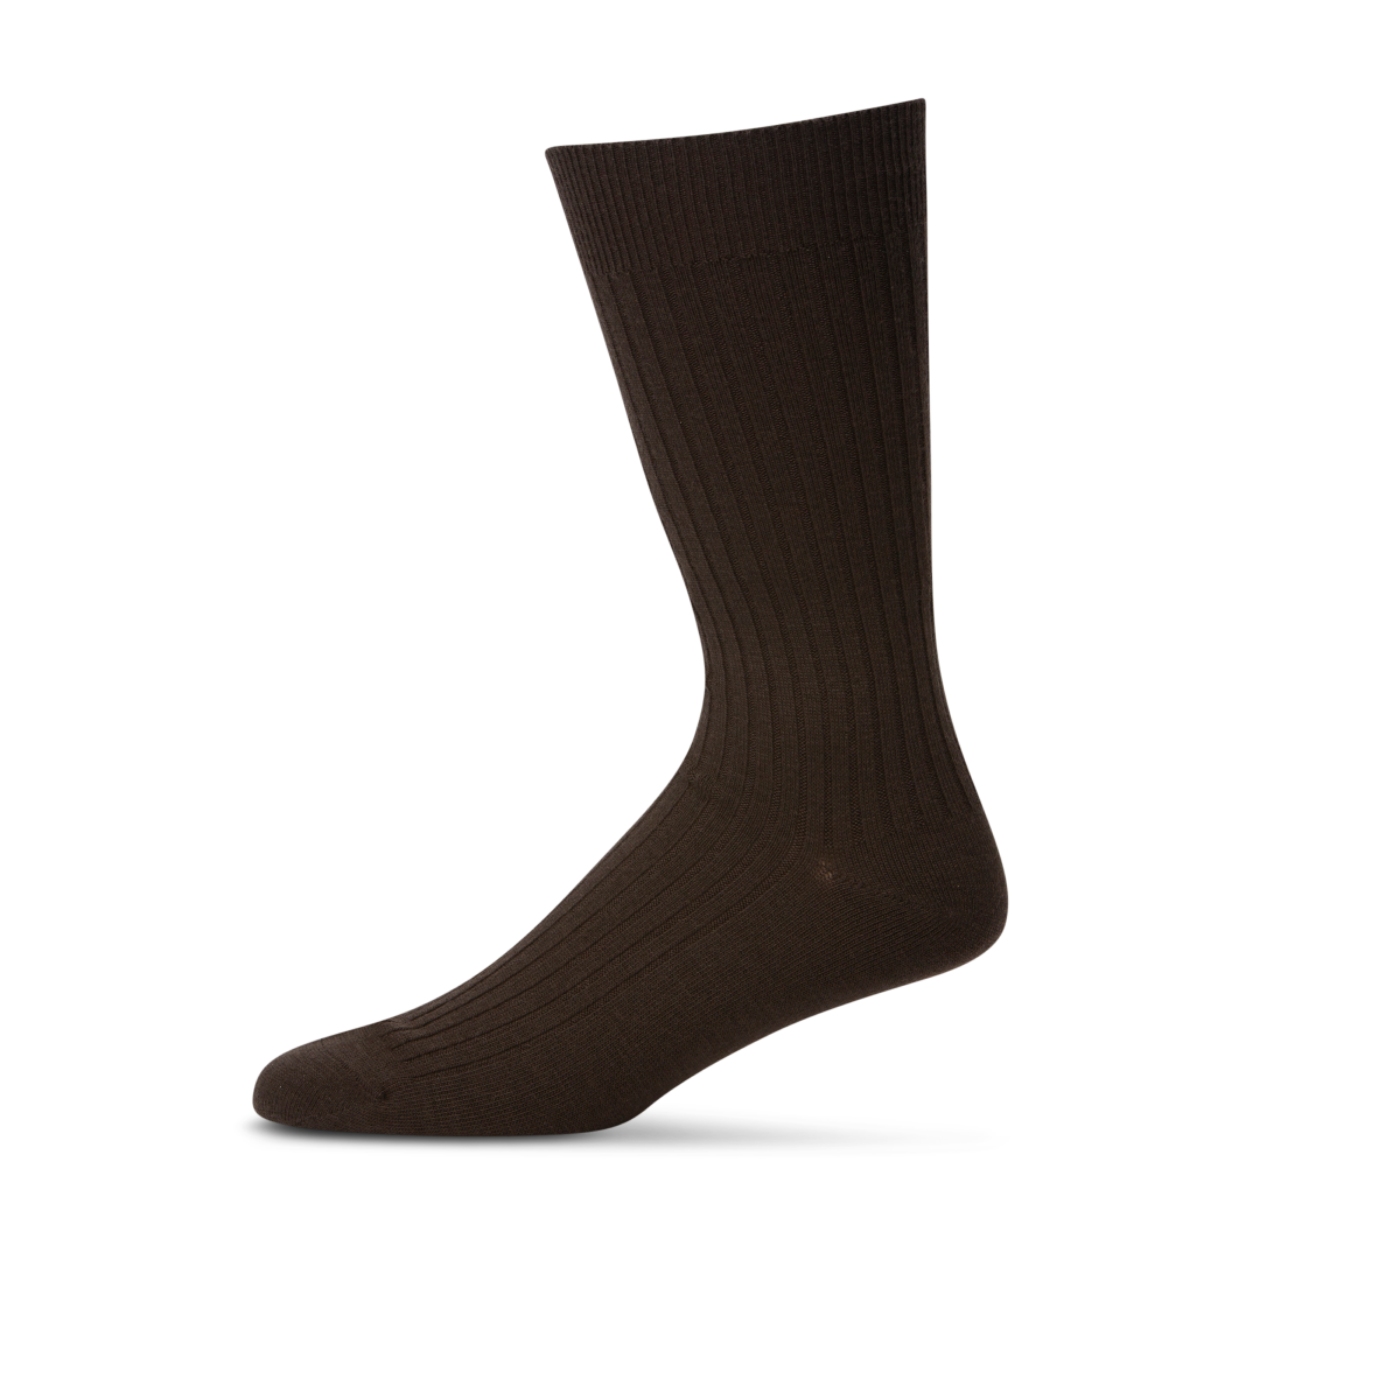 Pussyfoot Merino Wool Socks Men's 7-10 Dark Brown